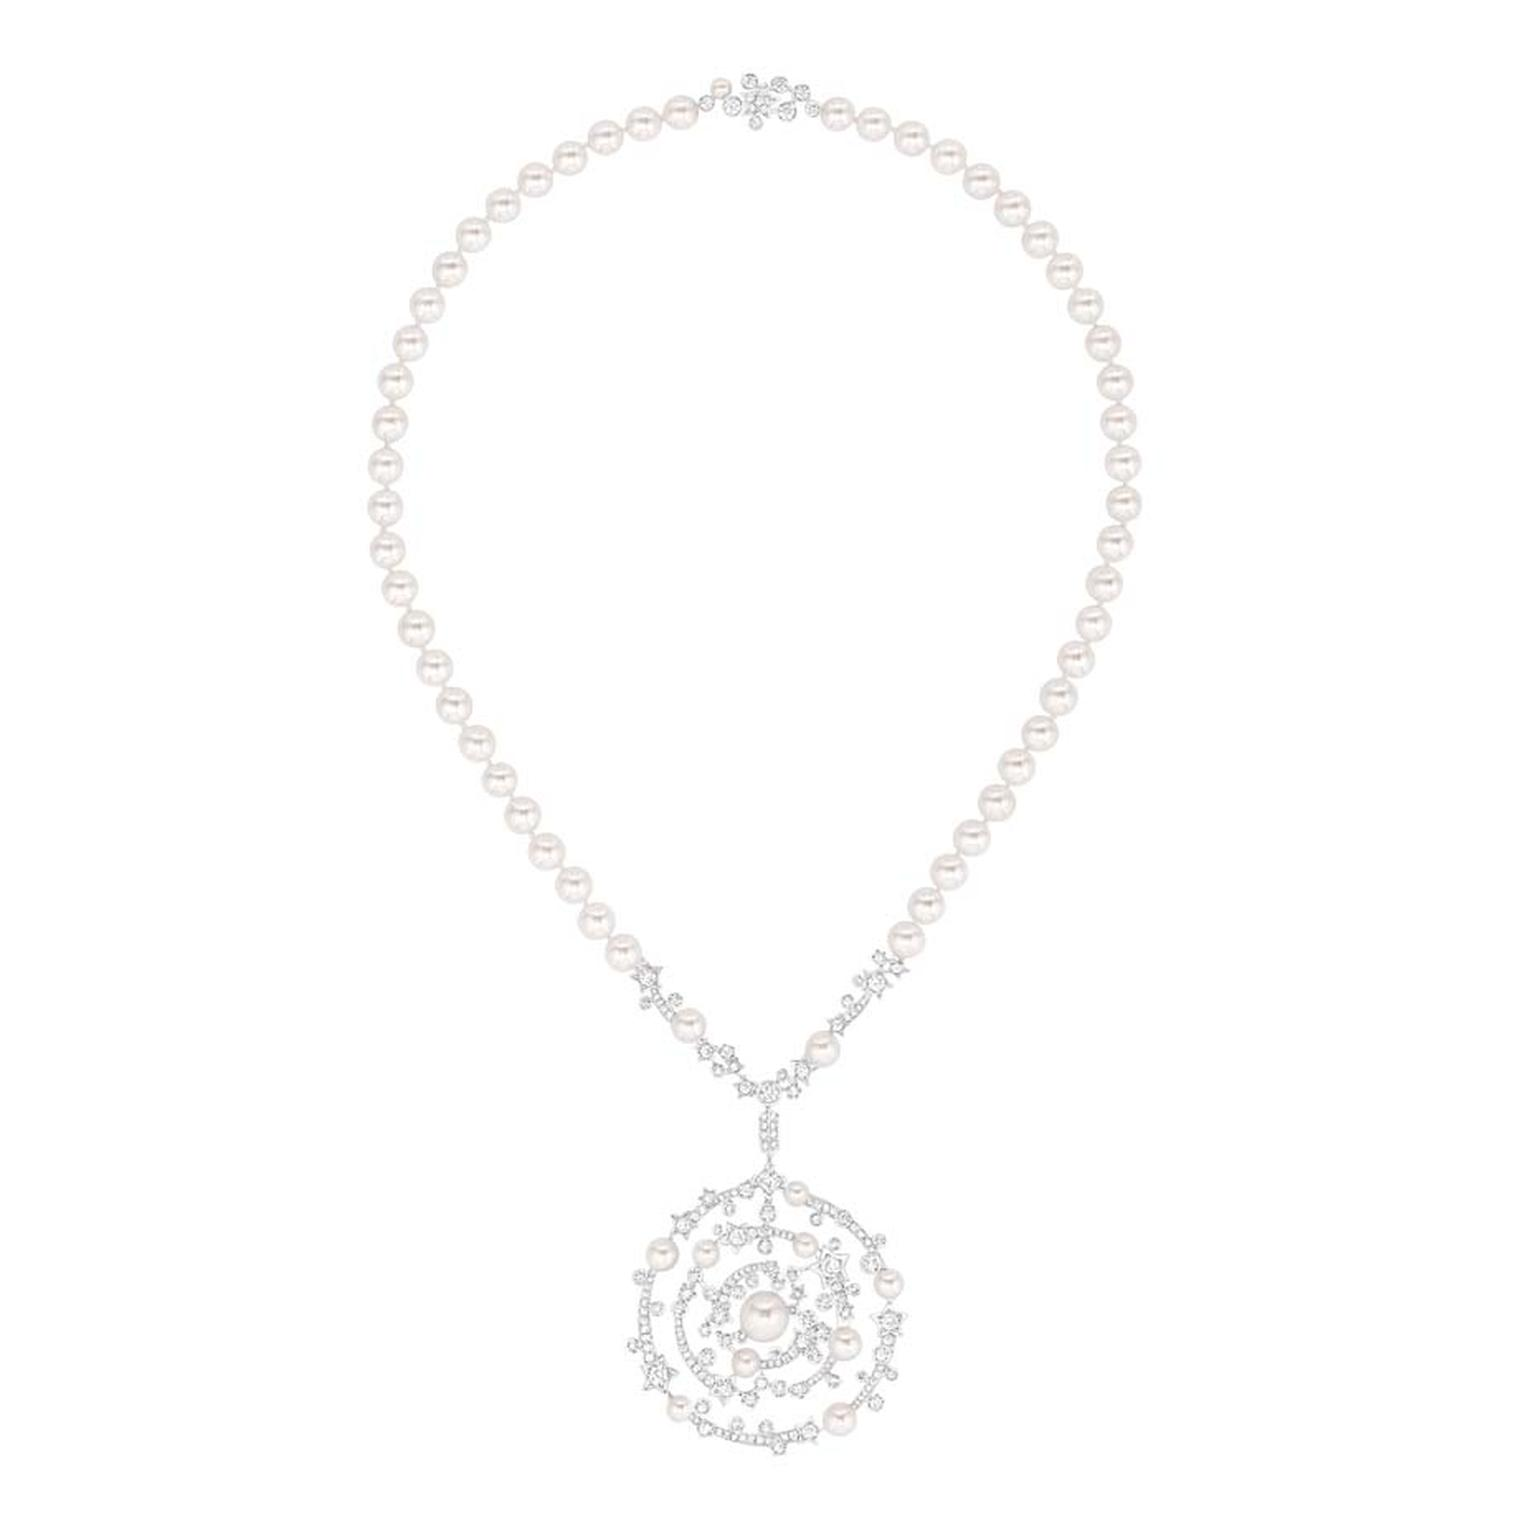 Chanel Spirale necklace in white gold, set with brilliant-cut diamonds, a cushon-cut diamond and 65 Japanese cultured pearls. From the new Les Intemporels high jewellery collection.